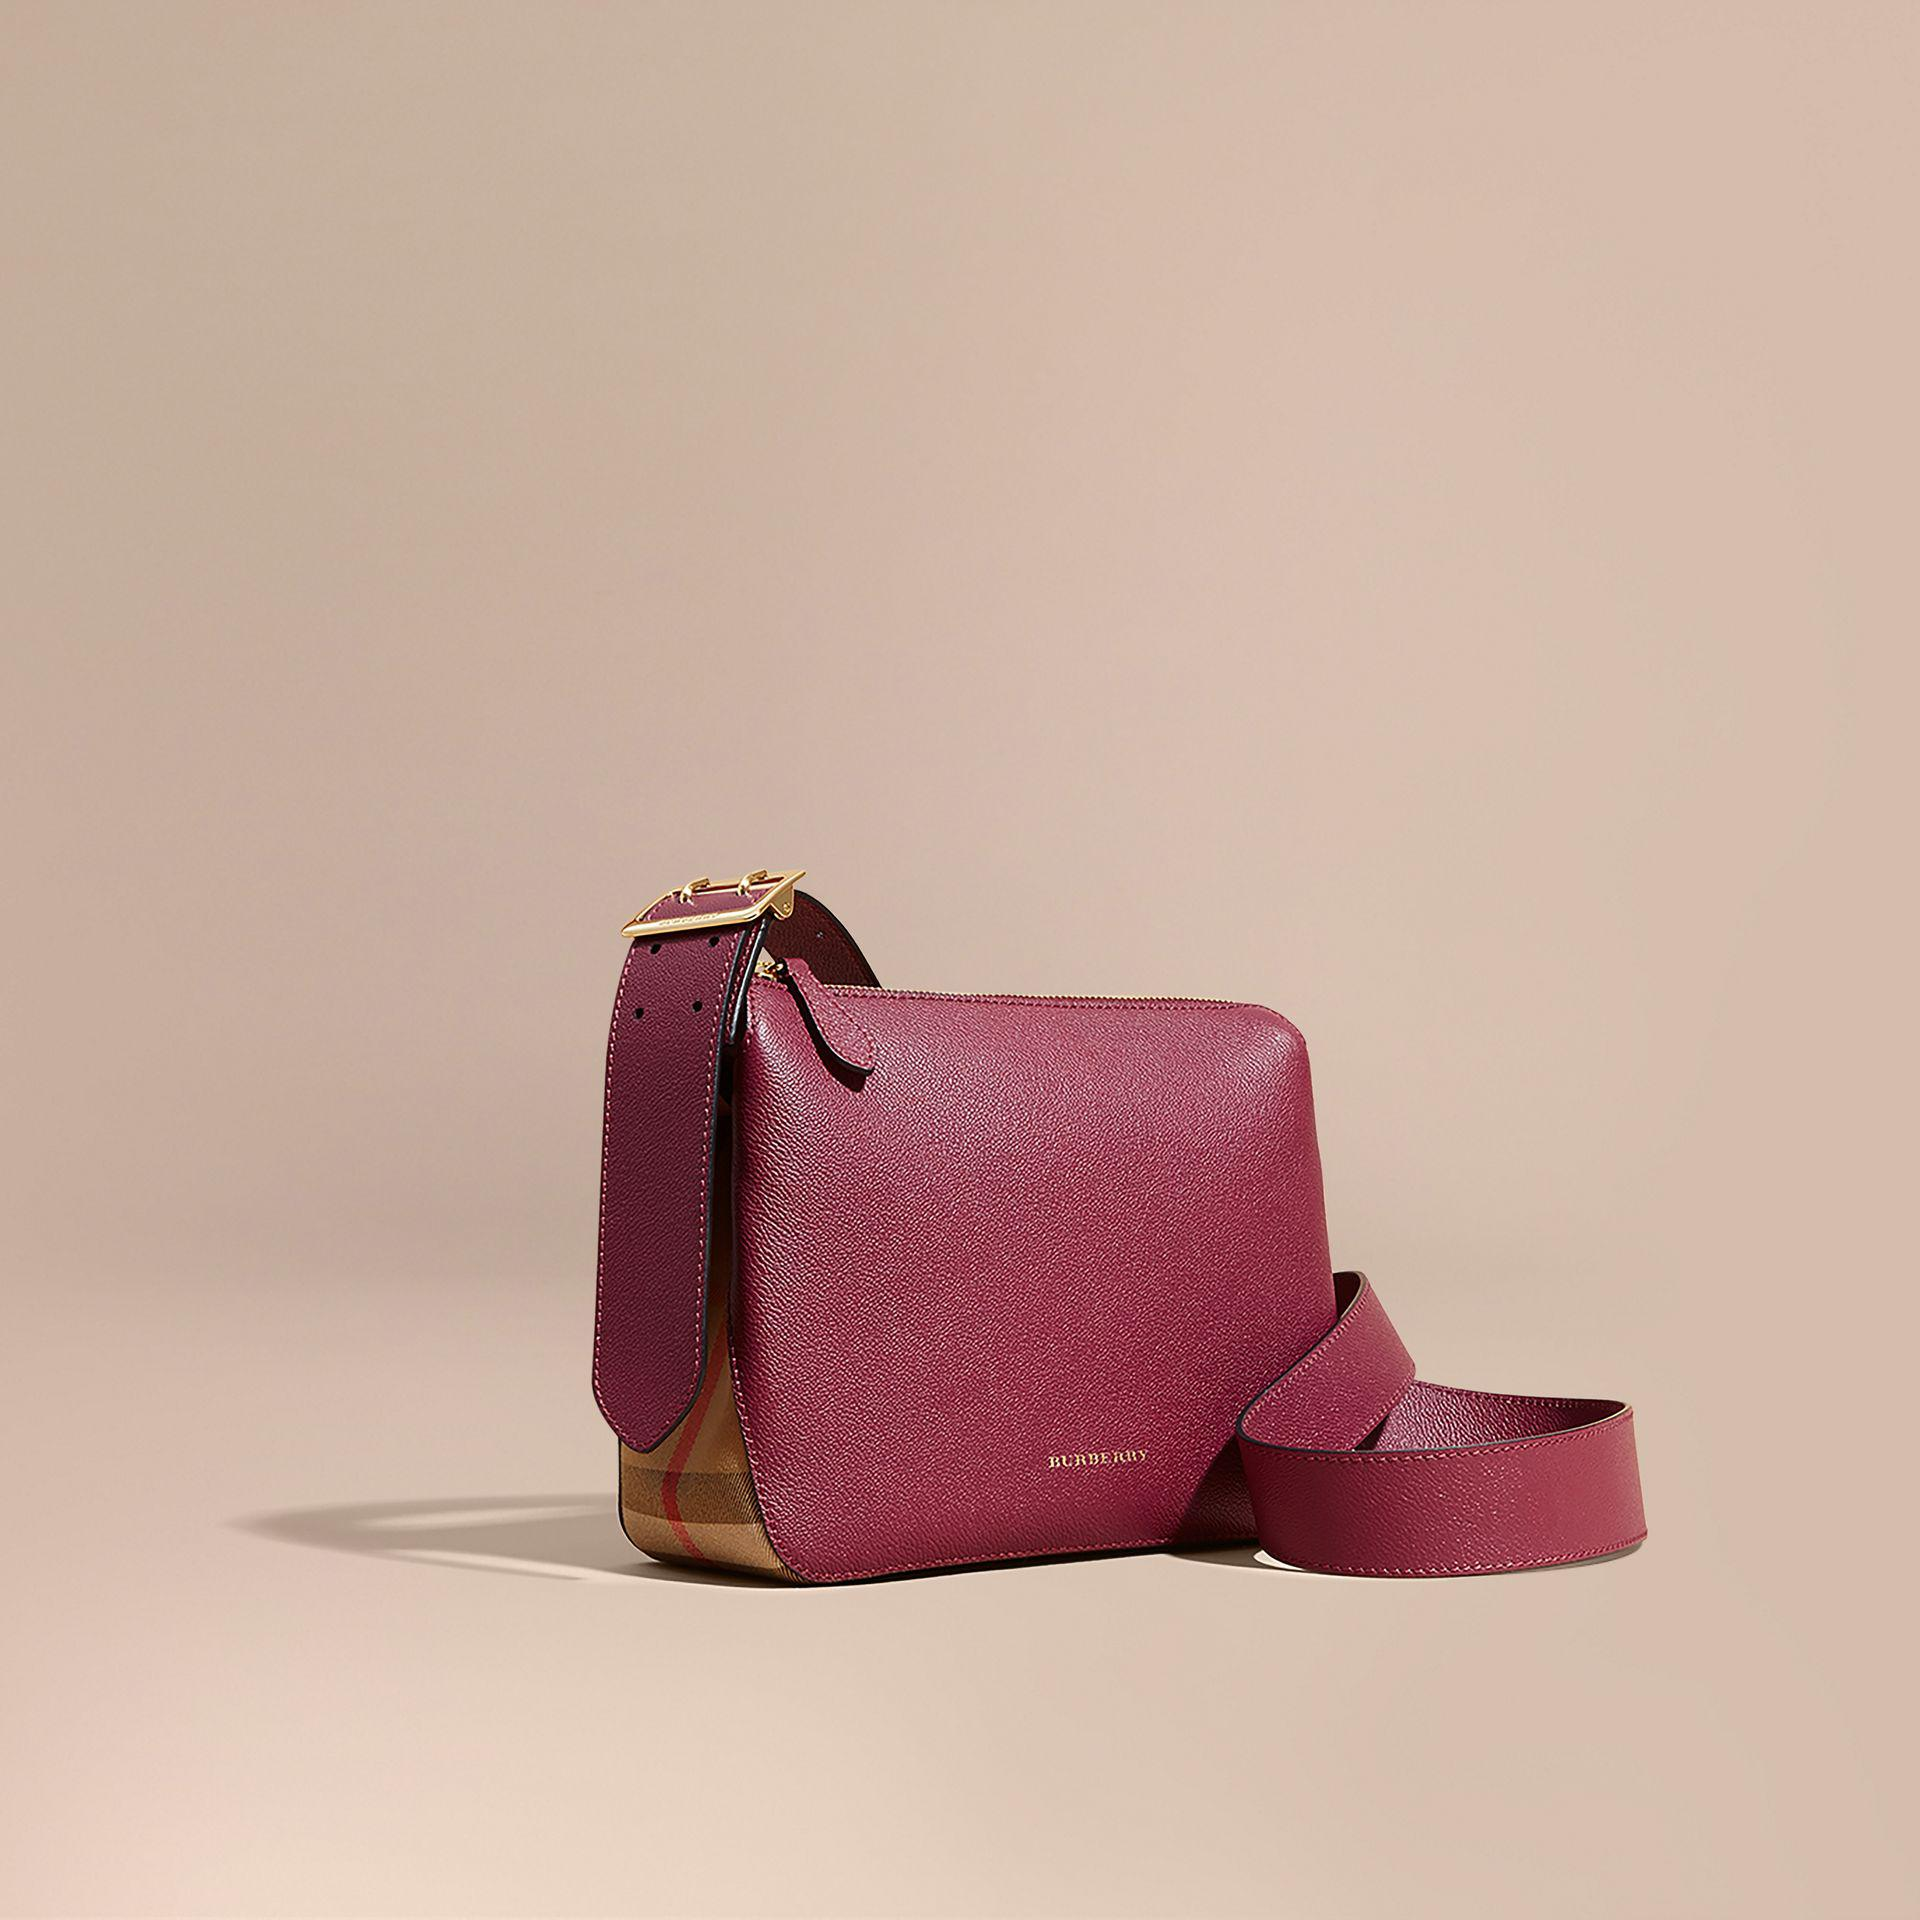 Burberry Buckle Detail Leather And House Check Crossbody Bag Dark ... d5f52a9c02